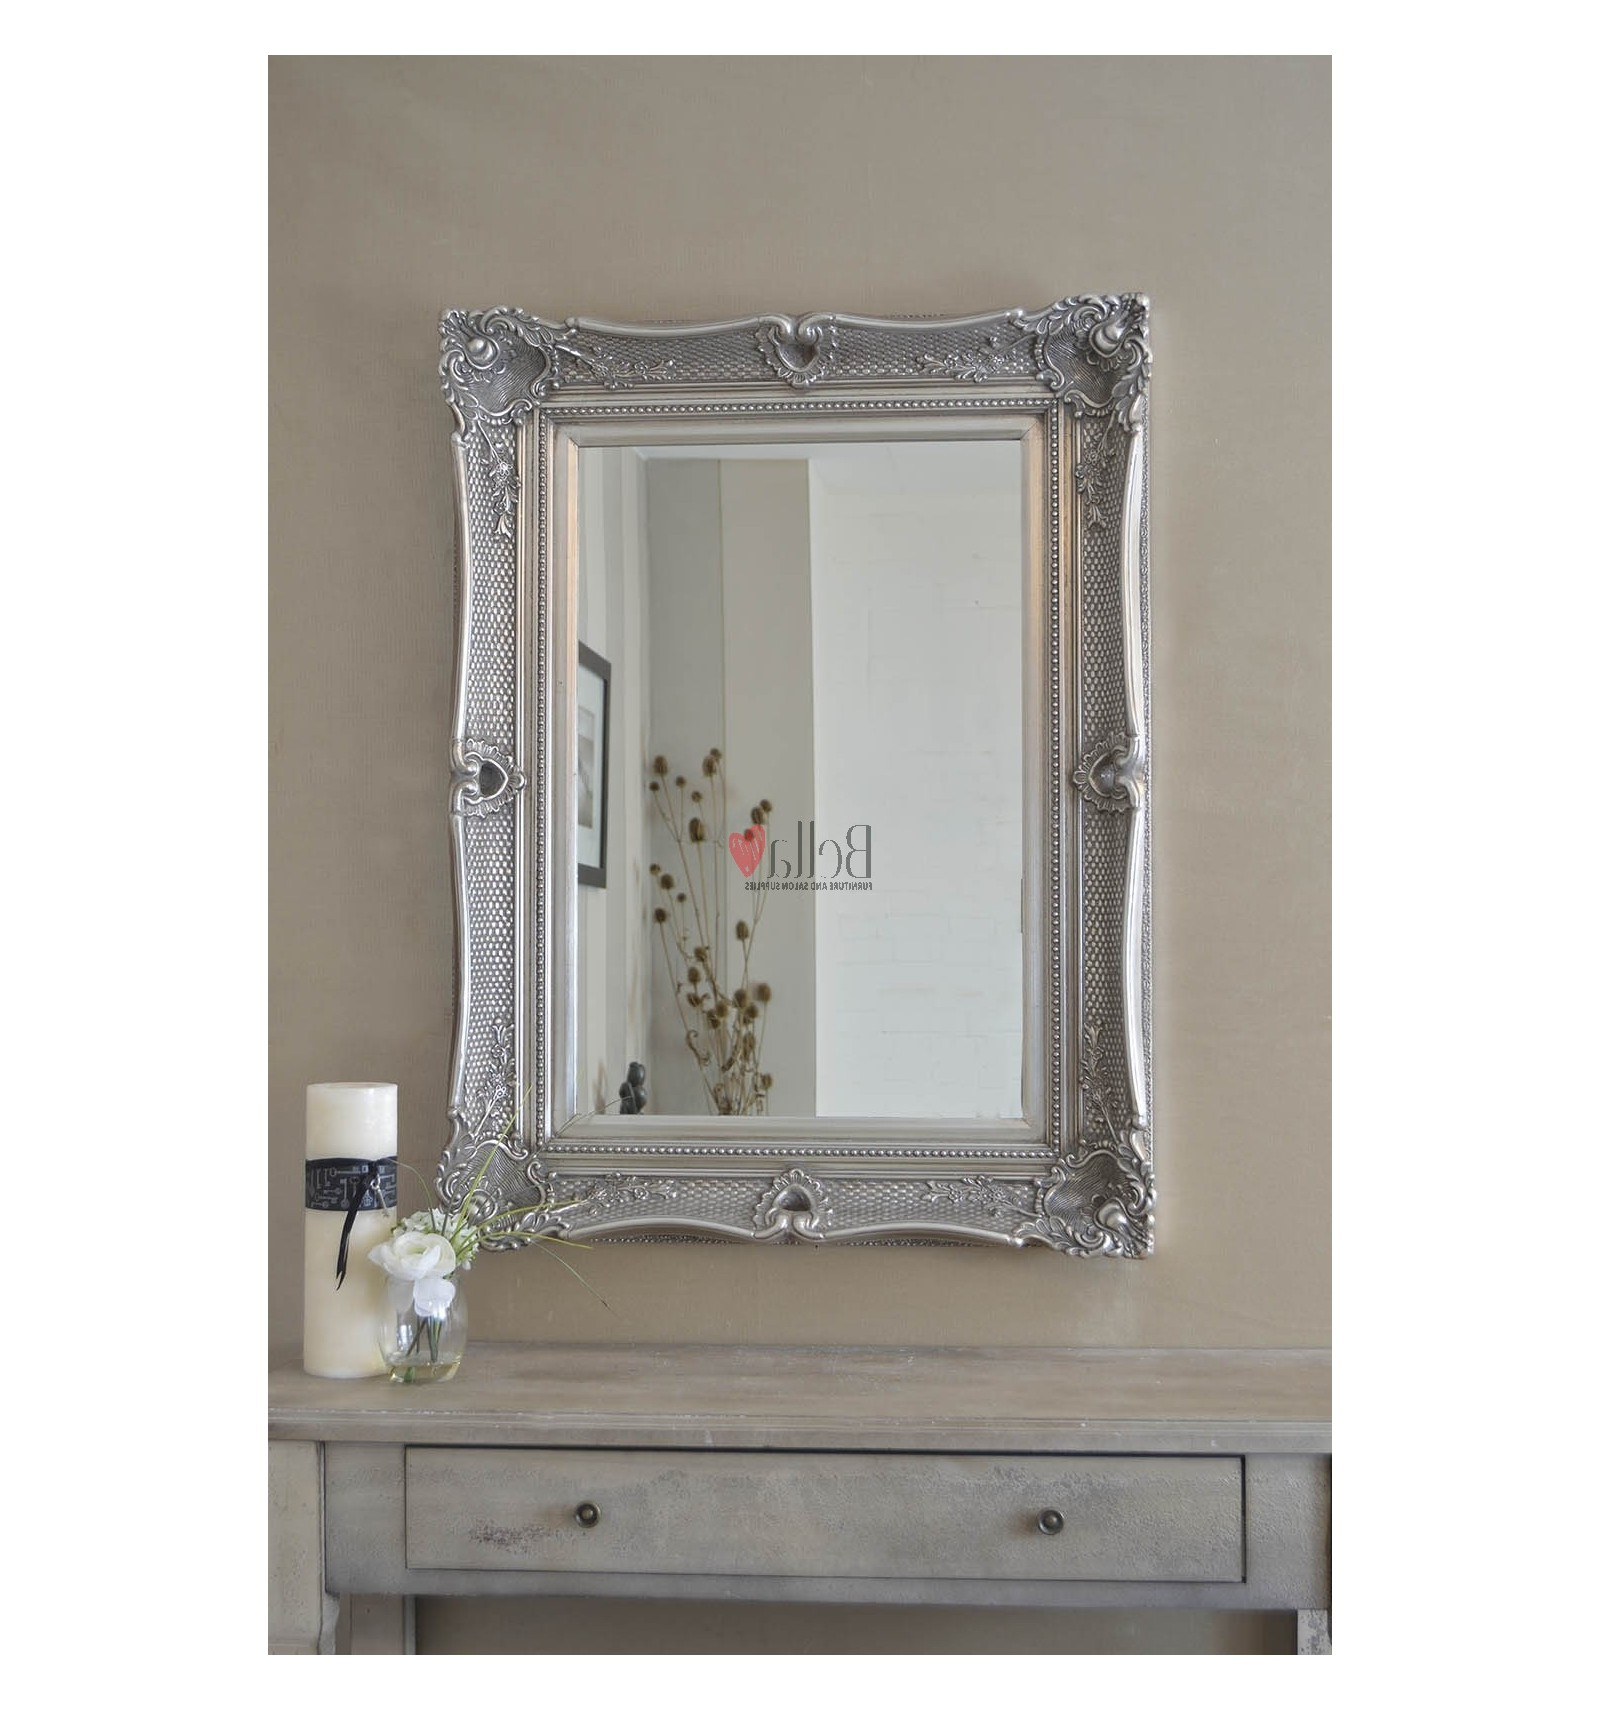 Trendy Small Glamorous Ornate Wall Mirror Intended For Small Wall Mirrors (View 19 of 20)